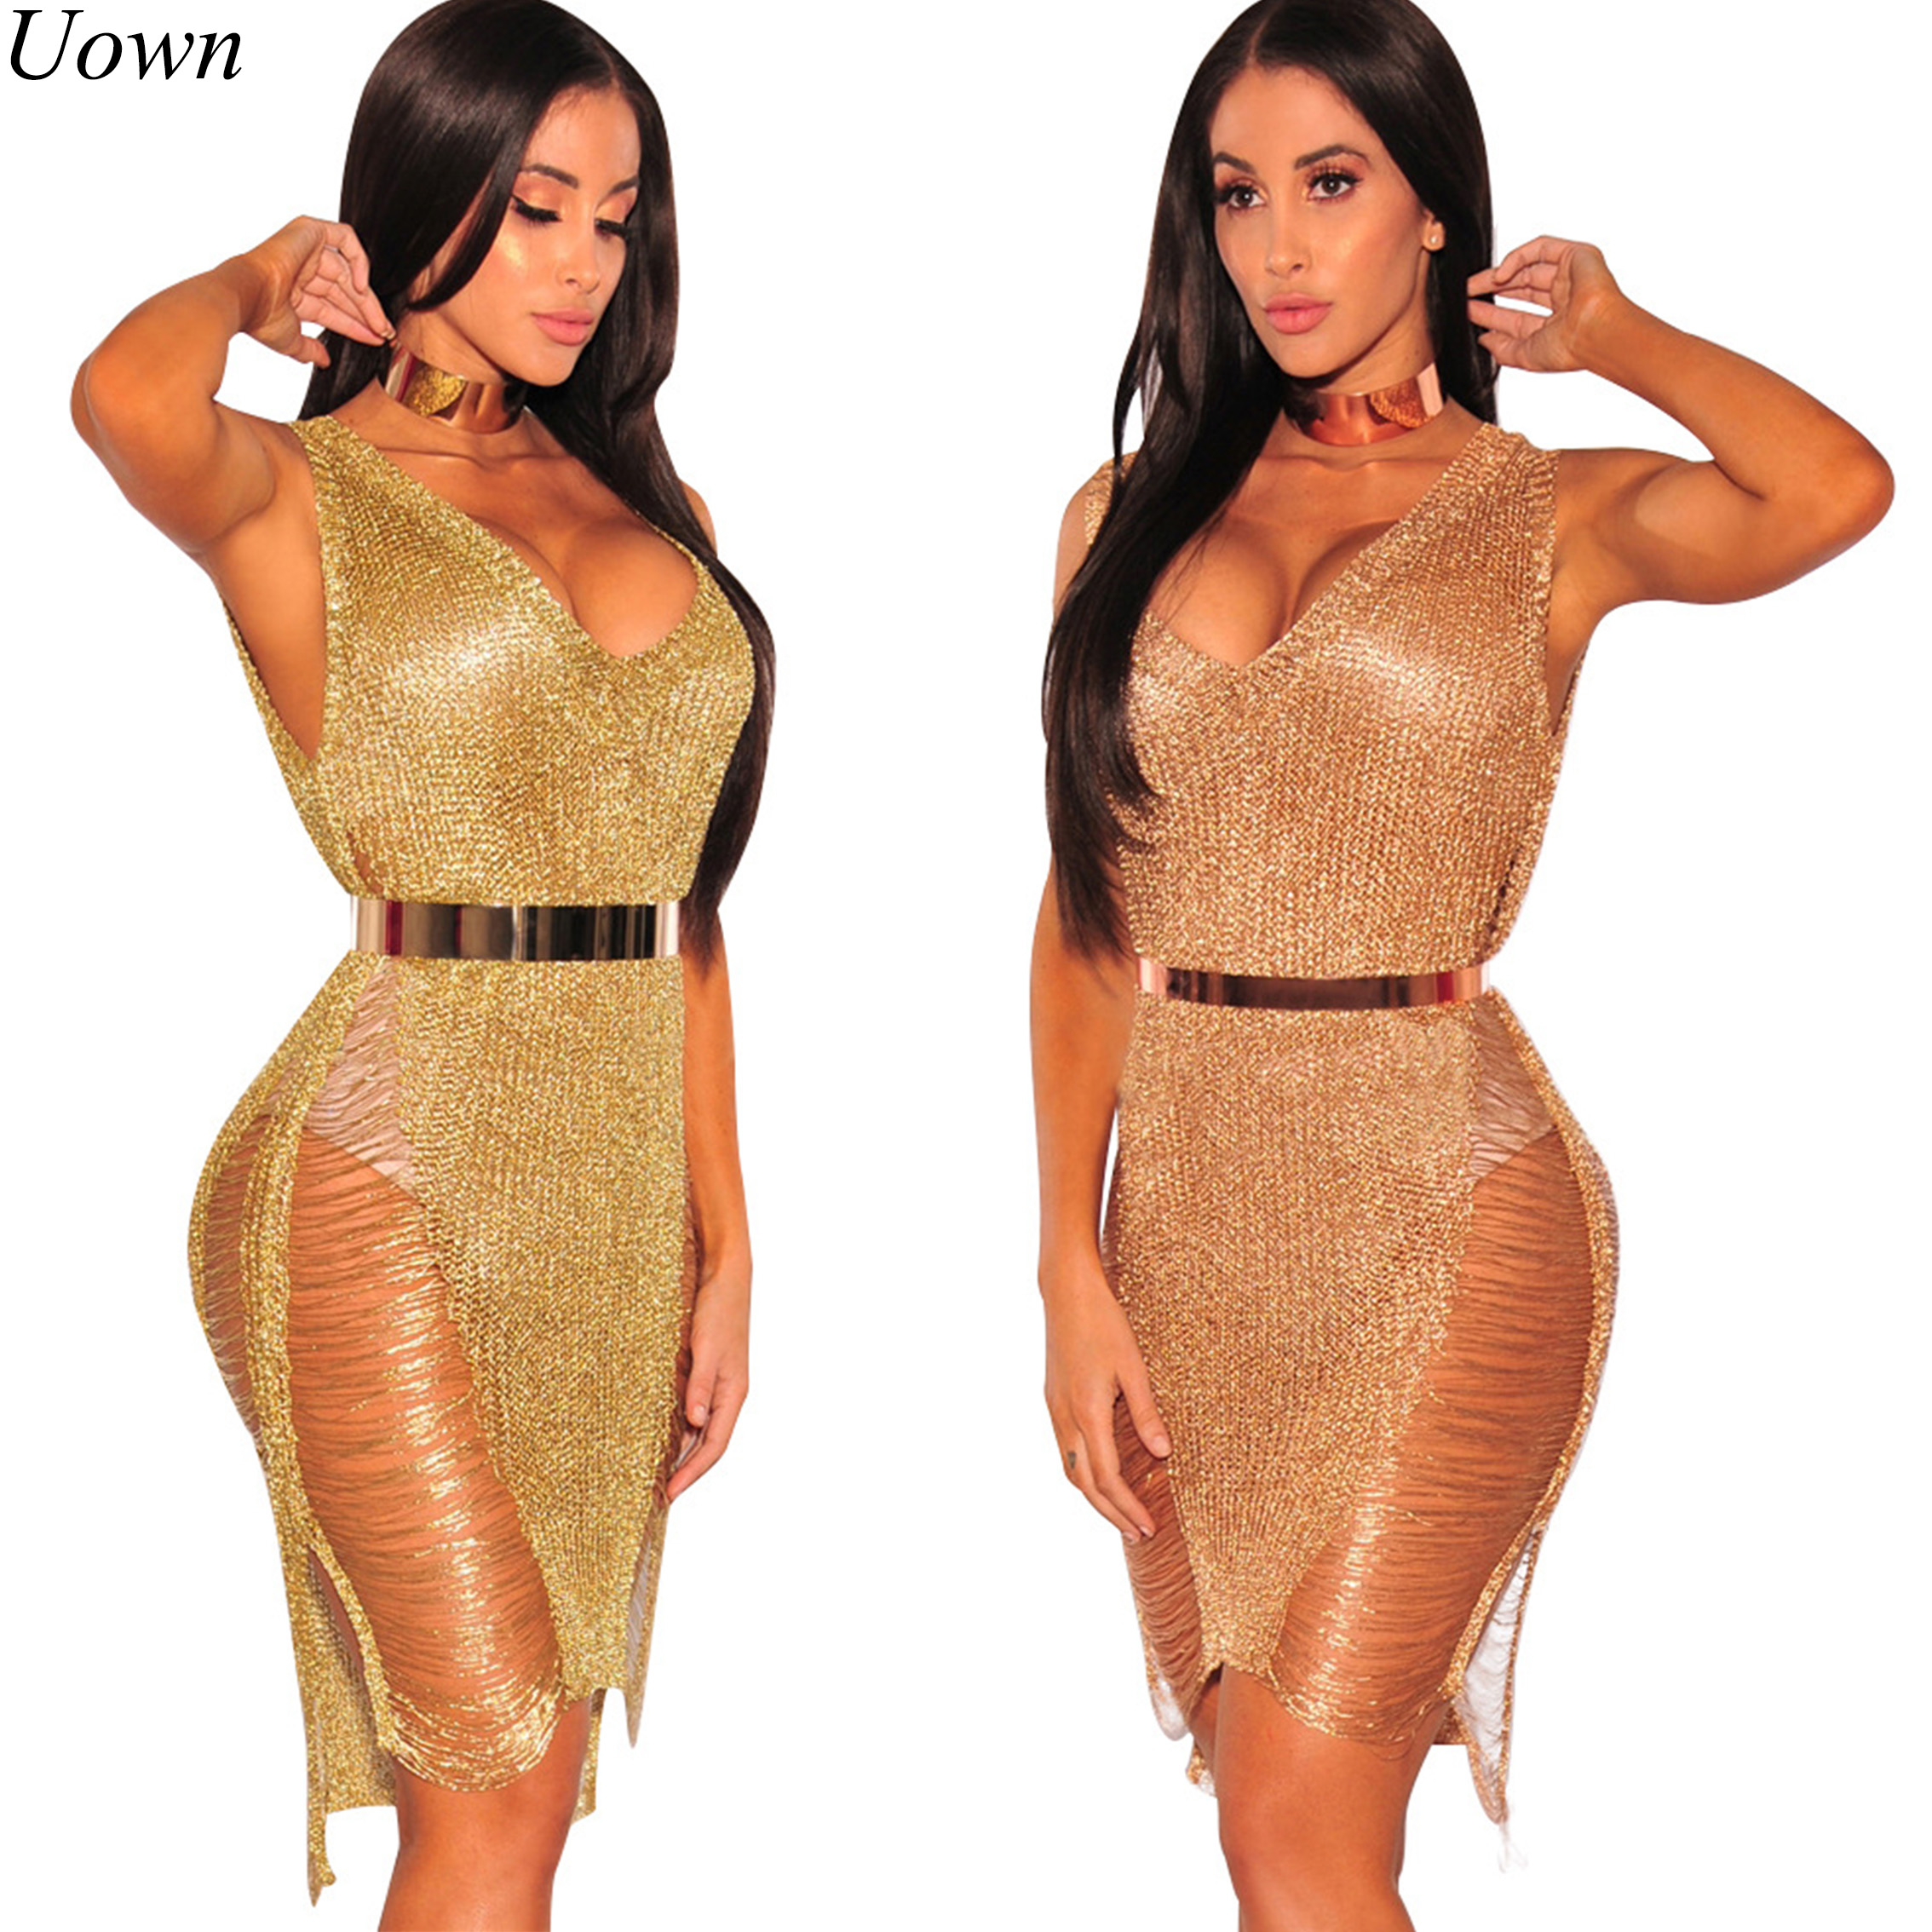 Damen sommer strand dress frauen elegant häkeln sexy backless aushöhlen club party nacht gold pailletten dress vestido ohne gürtel